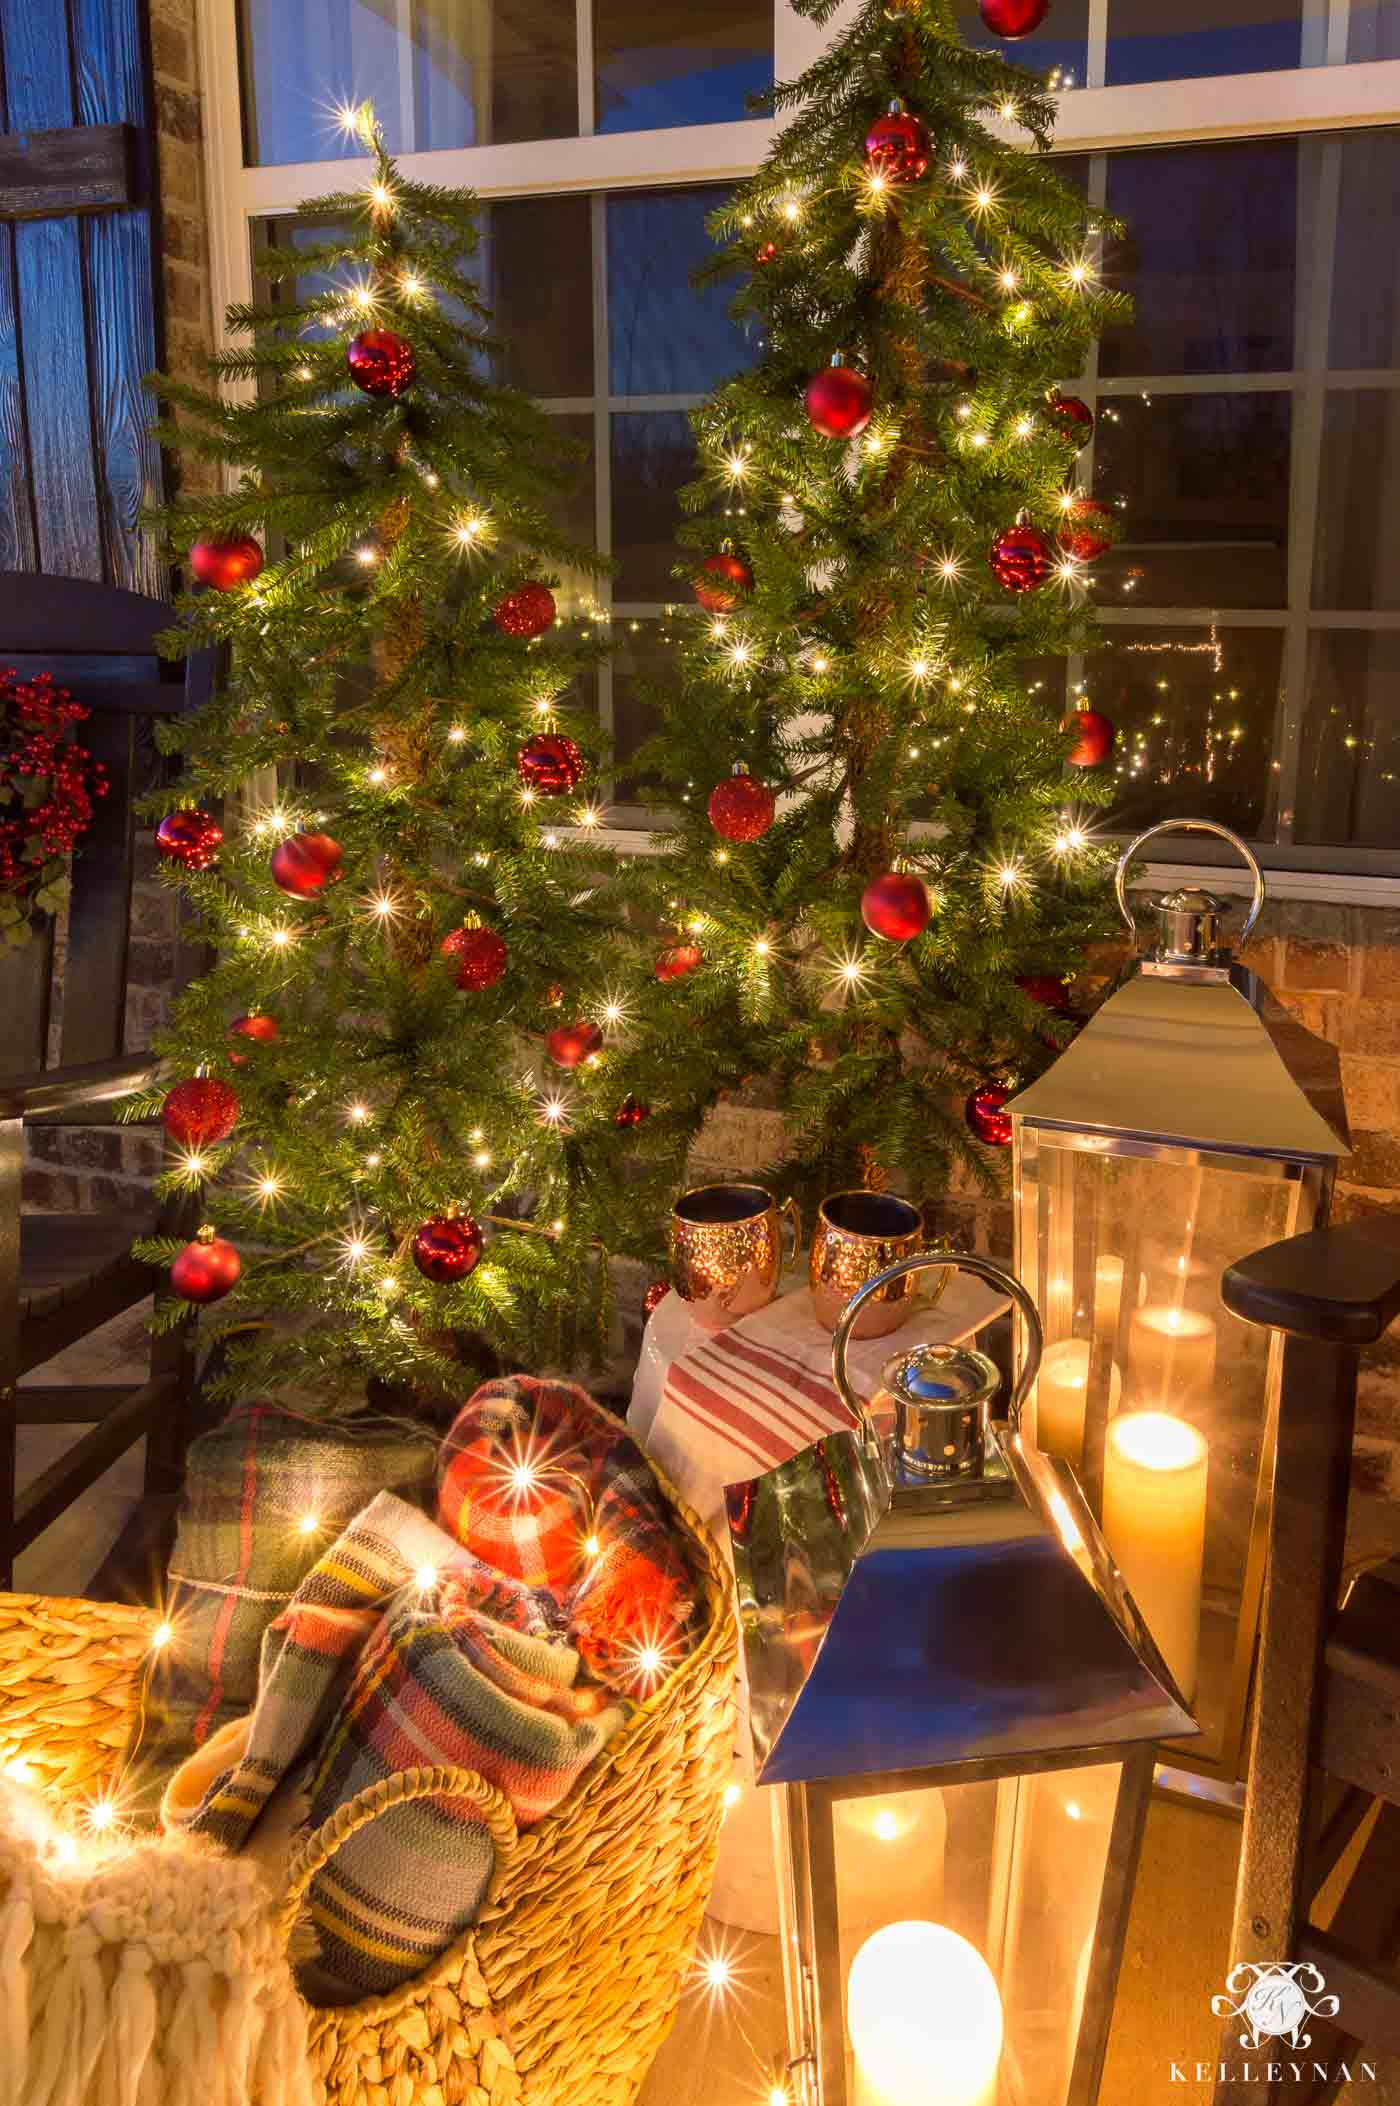 Traditional Christmas decorations on the front porch with cozy lanterns and throw blankets